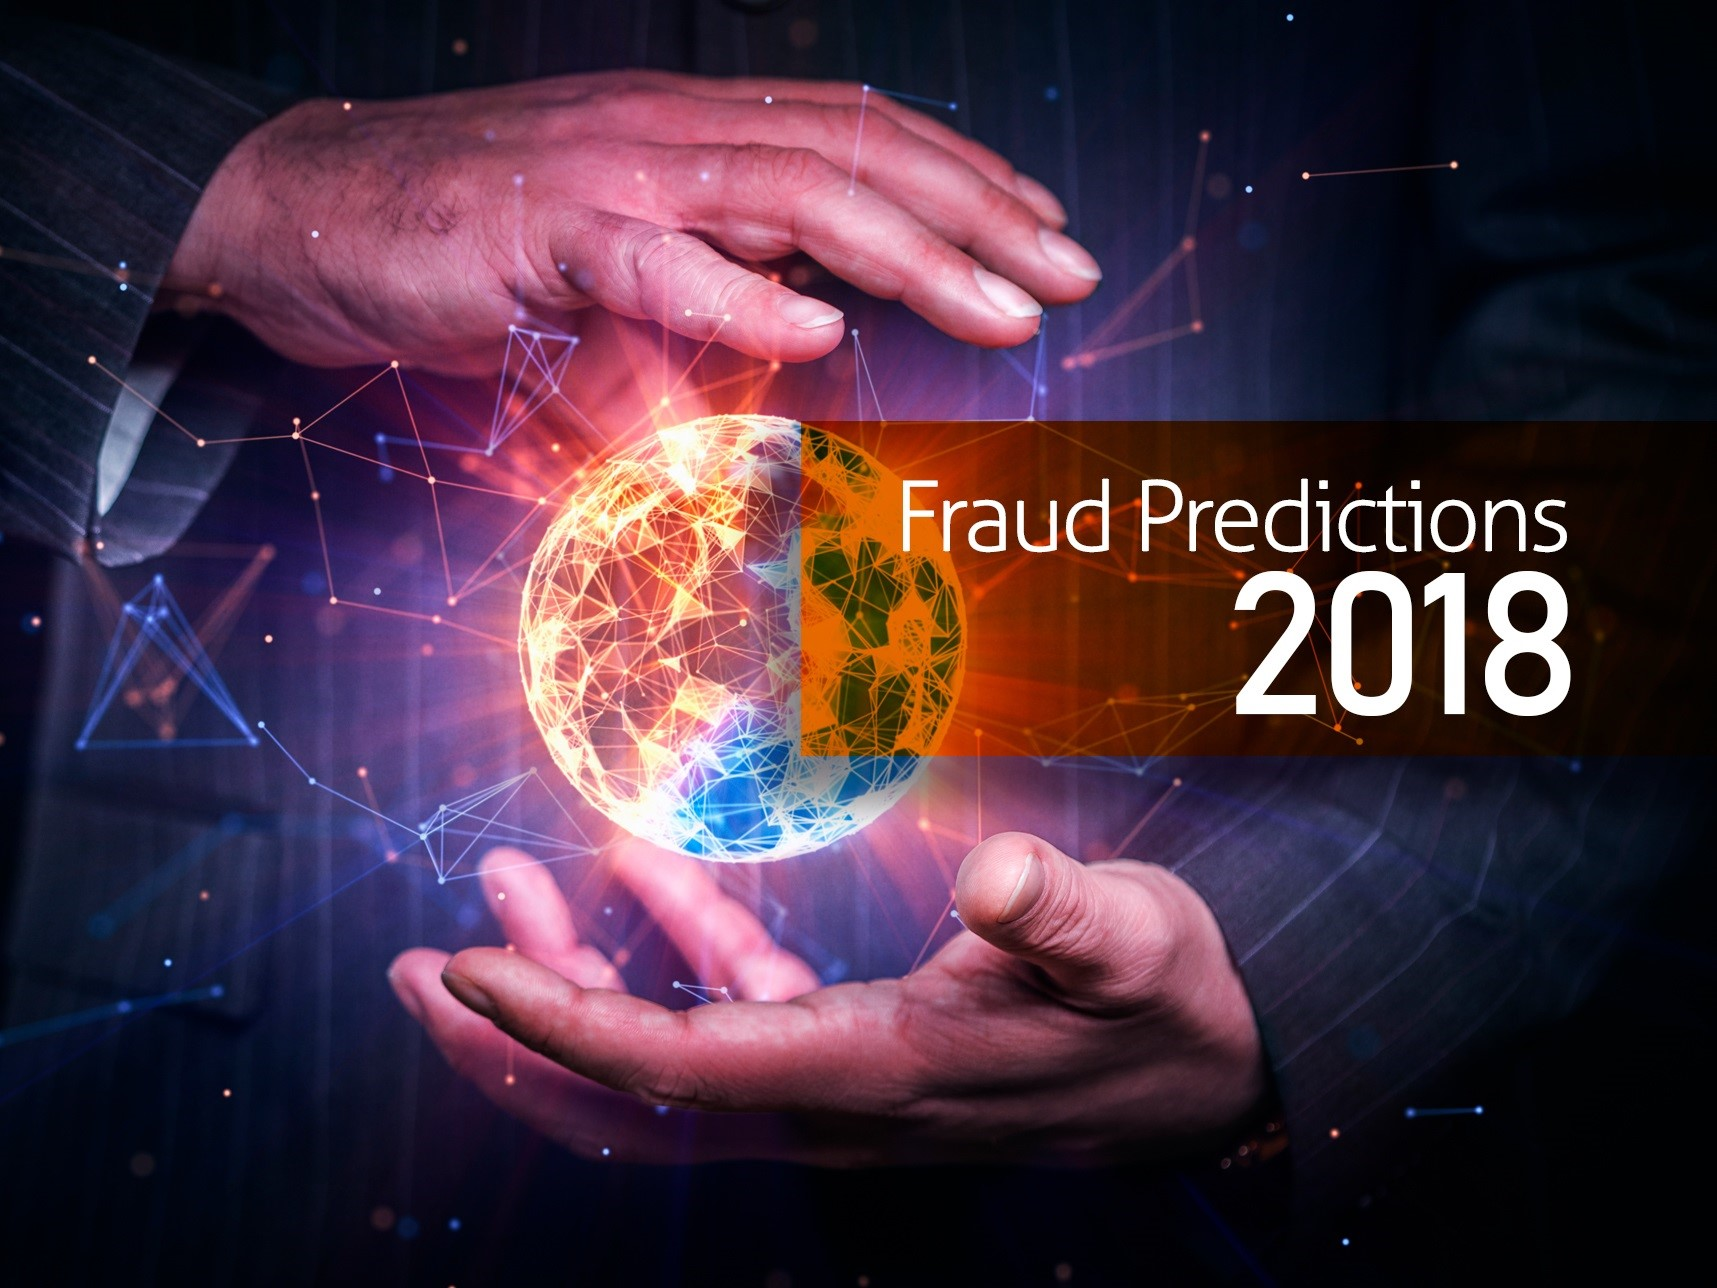 fraud predictions